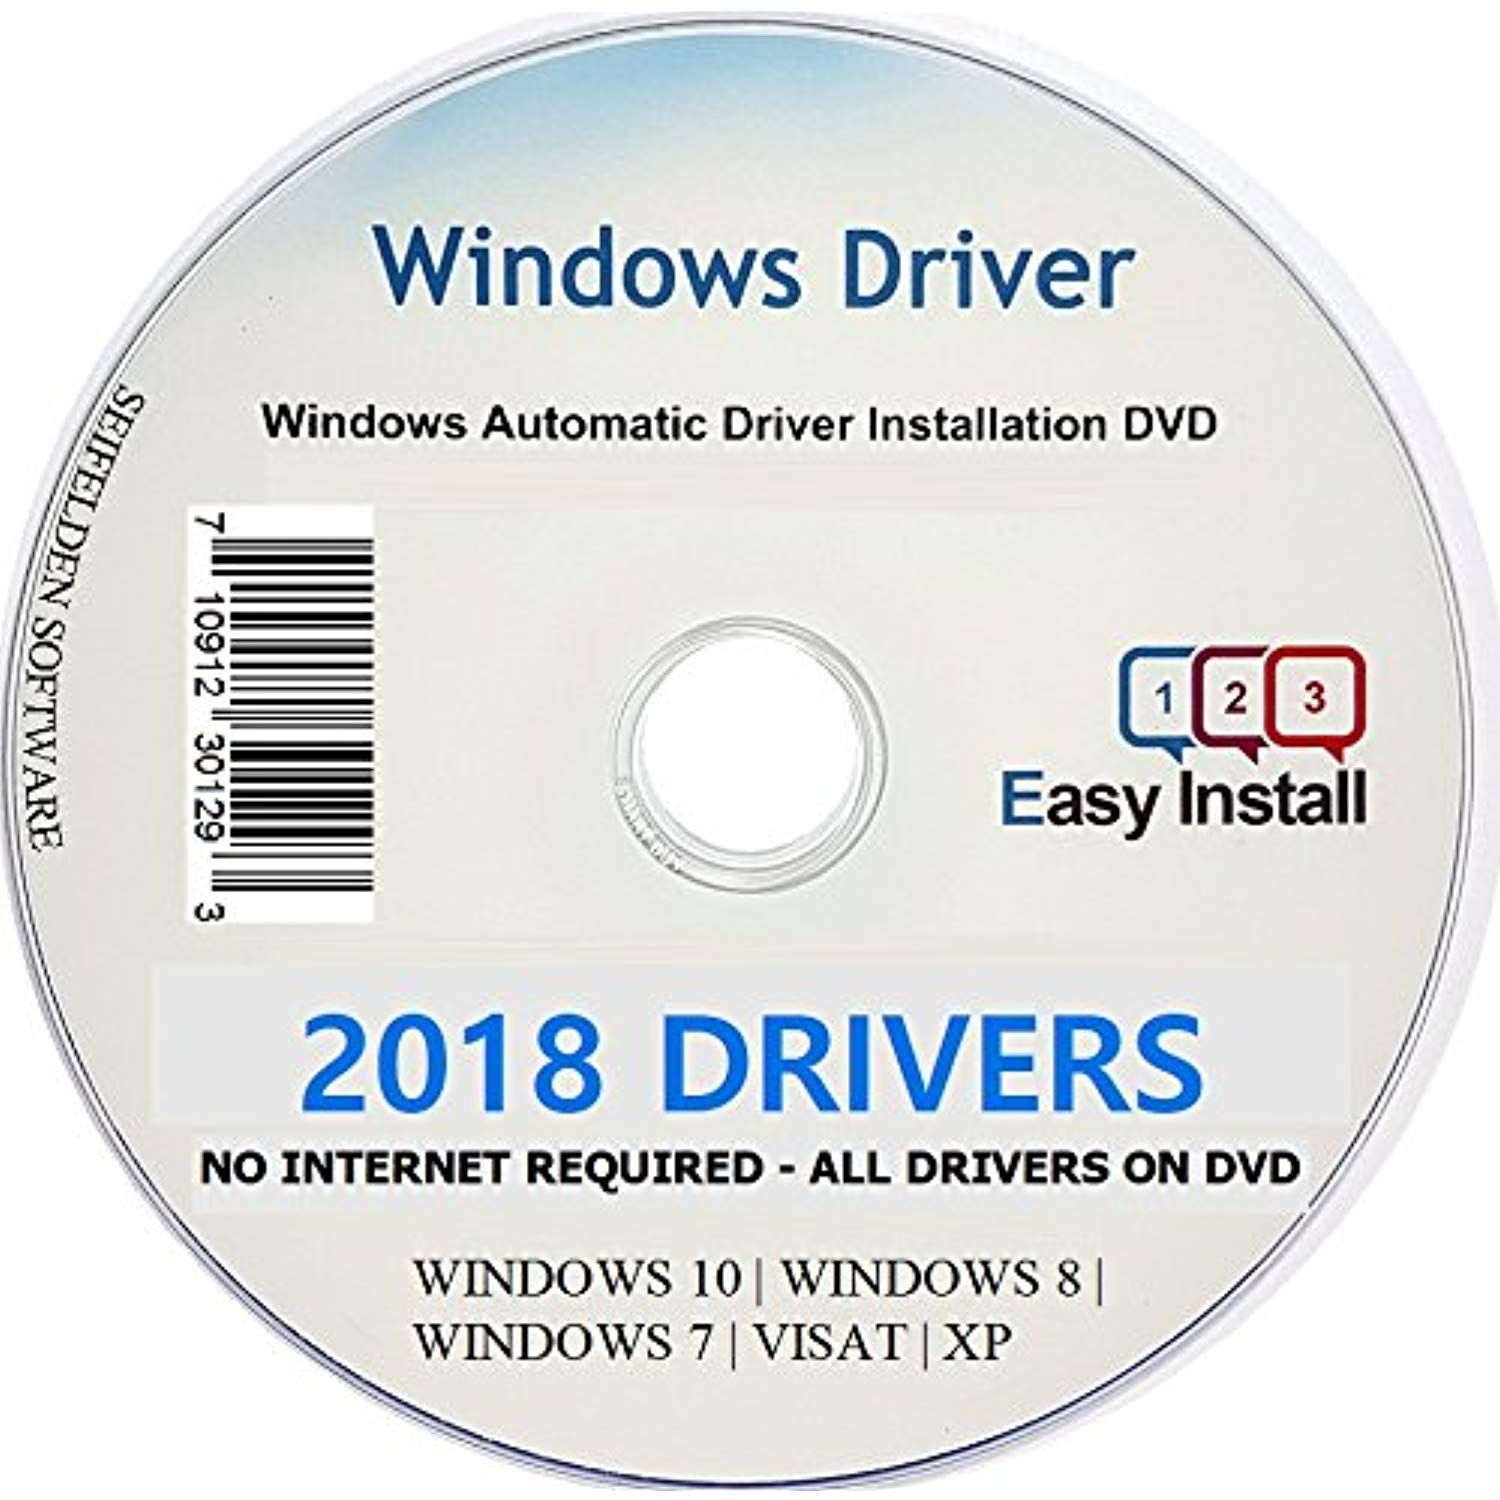 Automatic Driver Installation Only For Windows 10 7 Vista And Xp Supports Asus Hp Dell Gateway Toshiba Gateway Acer Sony Samsung Windows Windows 10 Computer Help